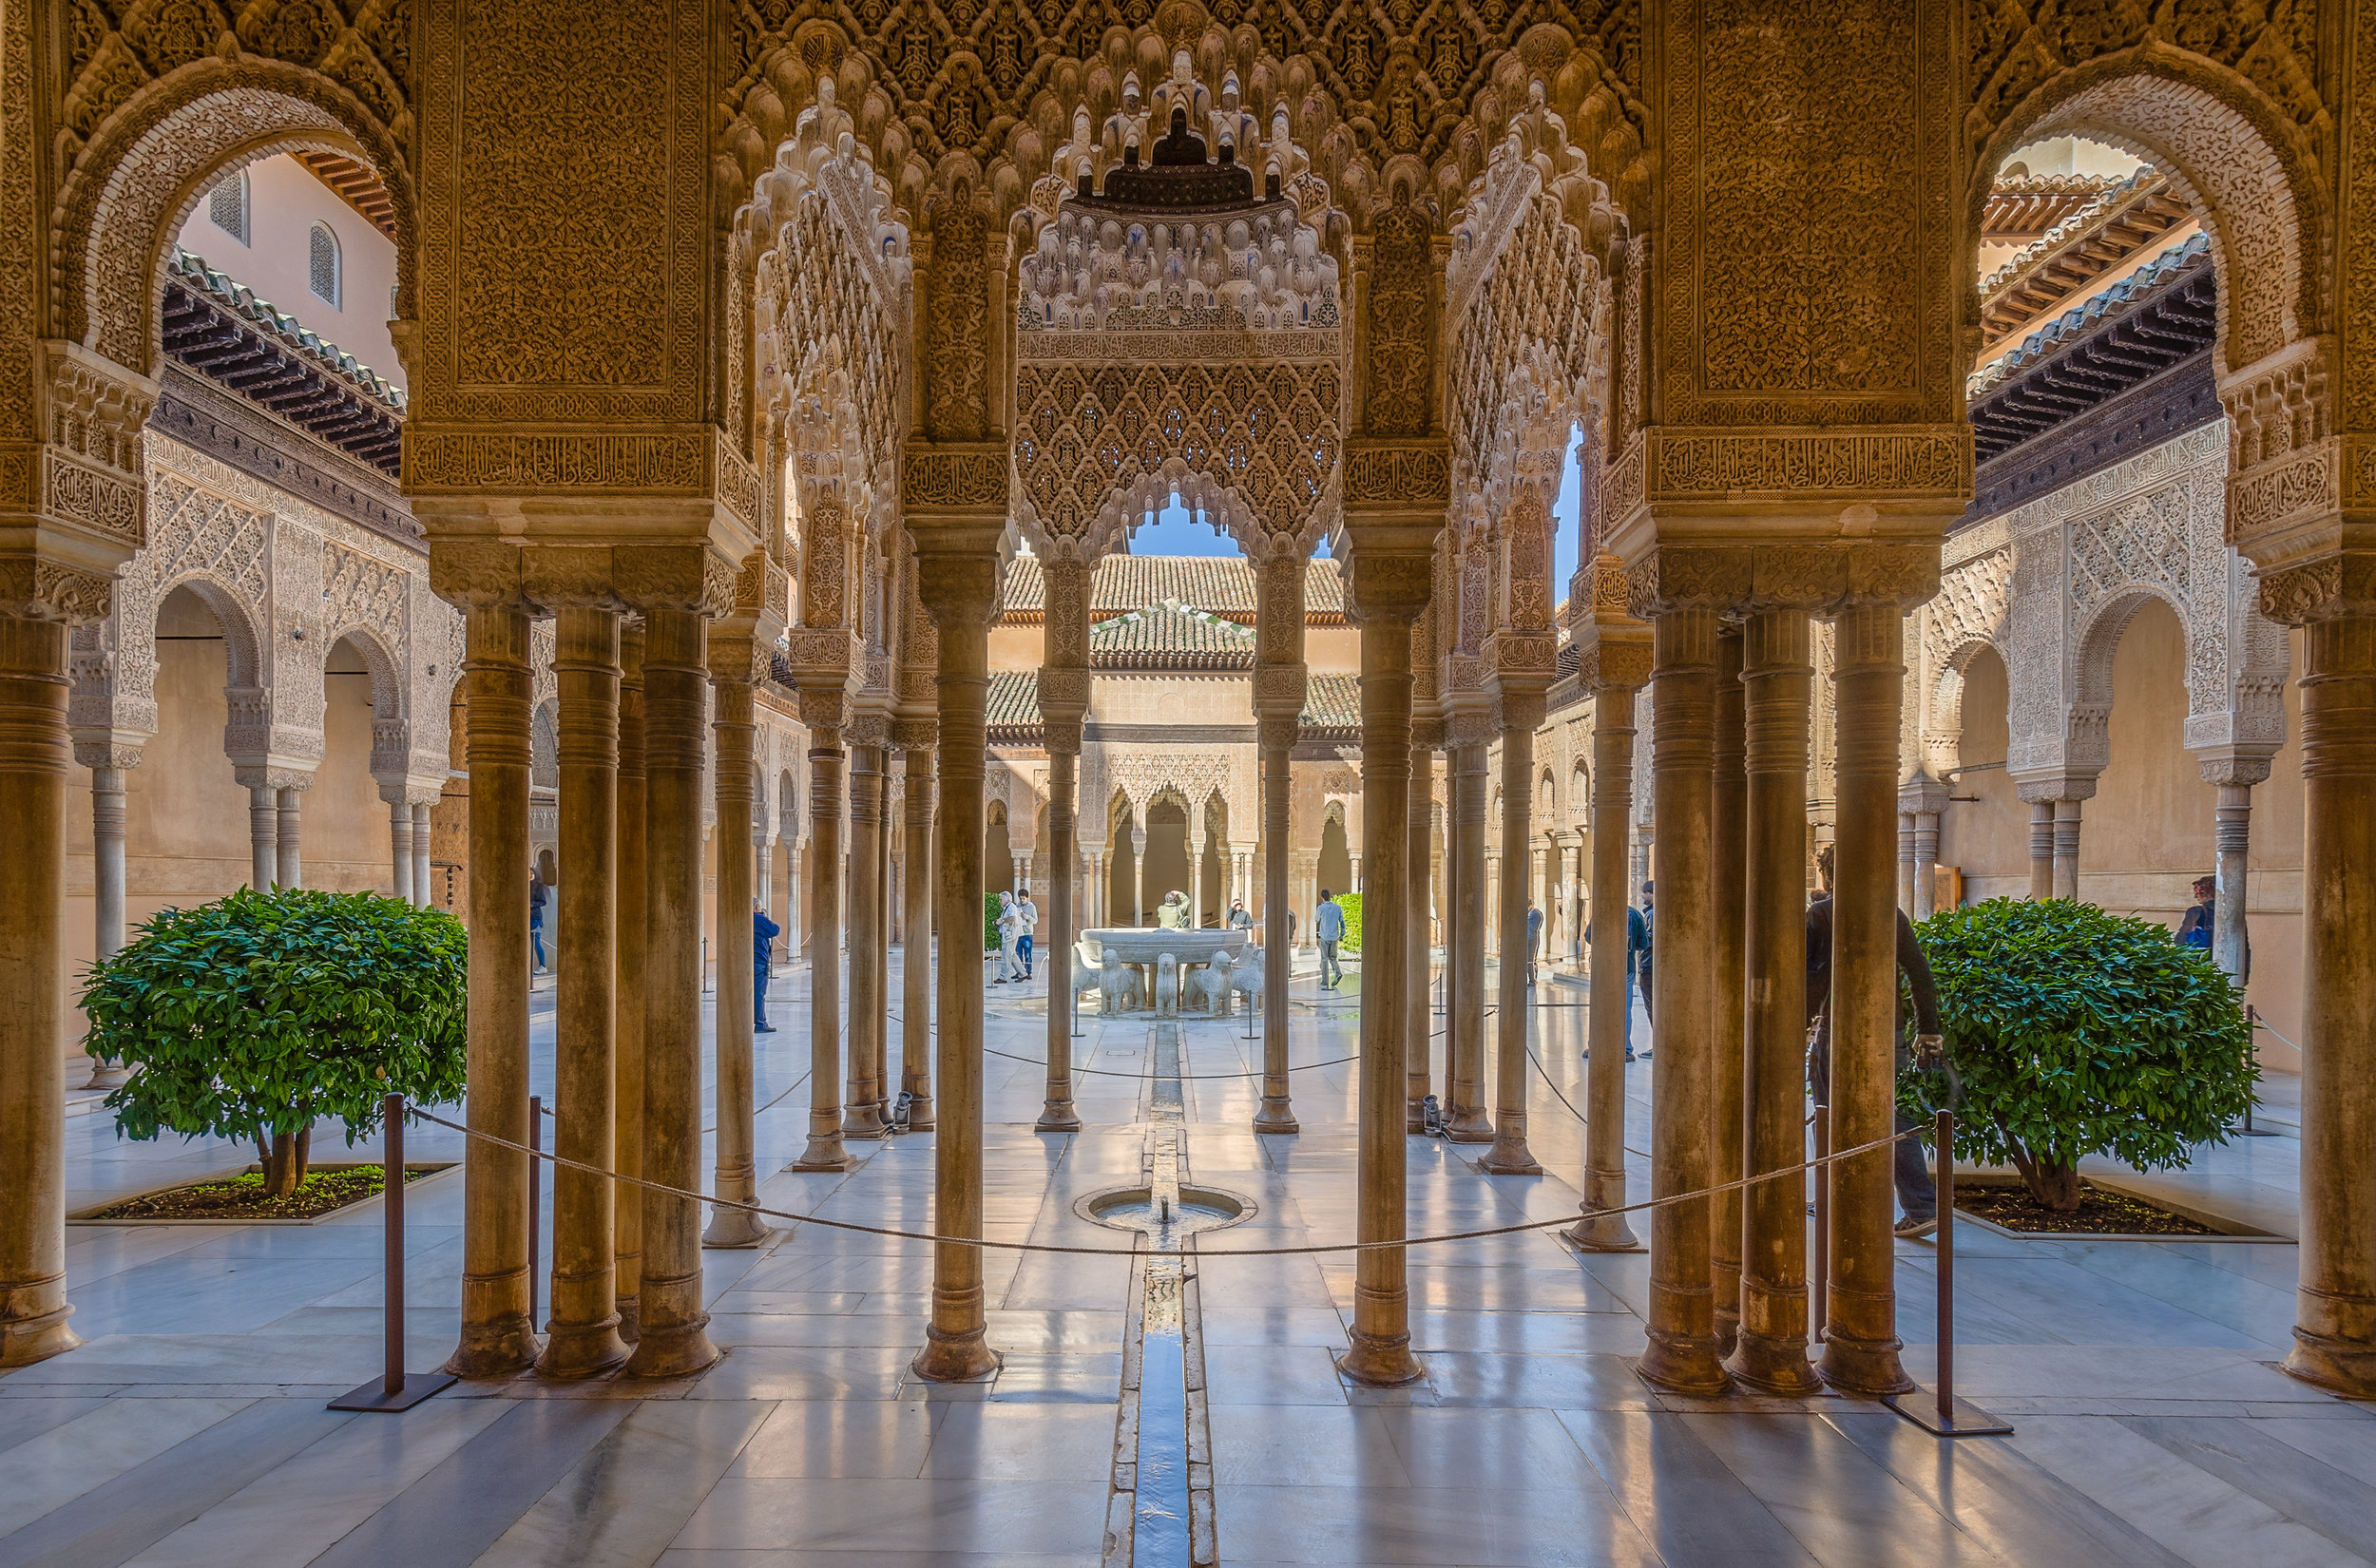 The Palace at Alhambra